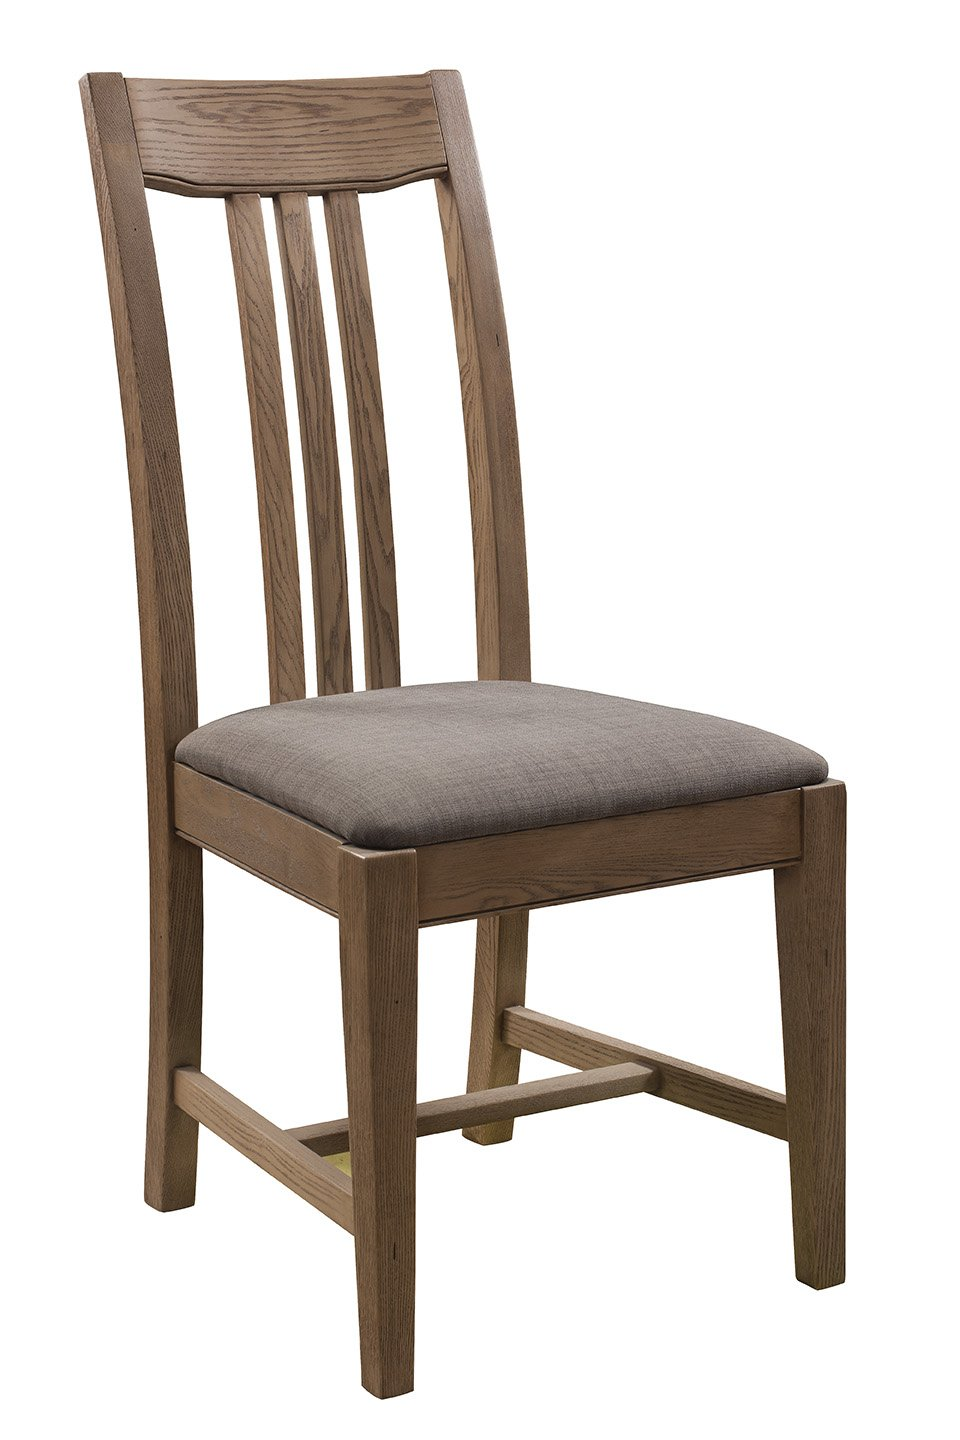 Oak Furniture Company Catalan Ash Wood Dining Chair (PAIR): Amazon